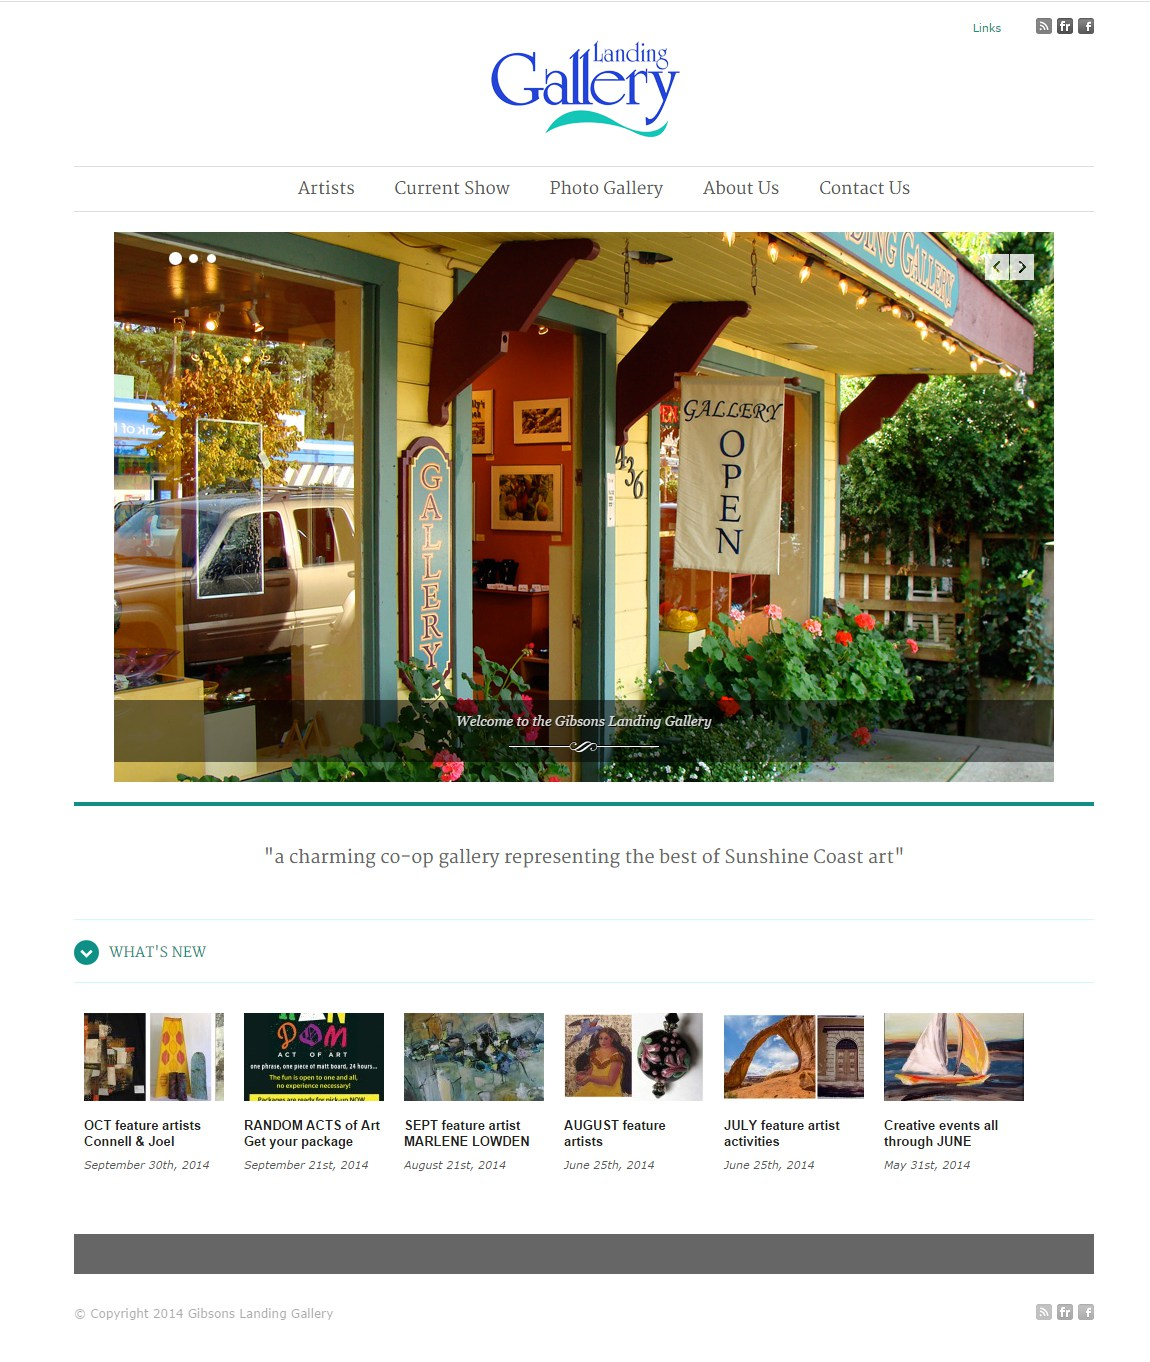 The Landing Gallery Website Design